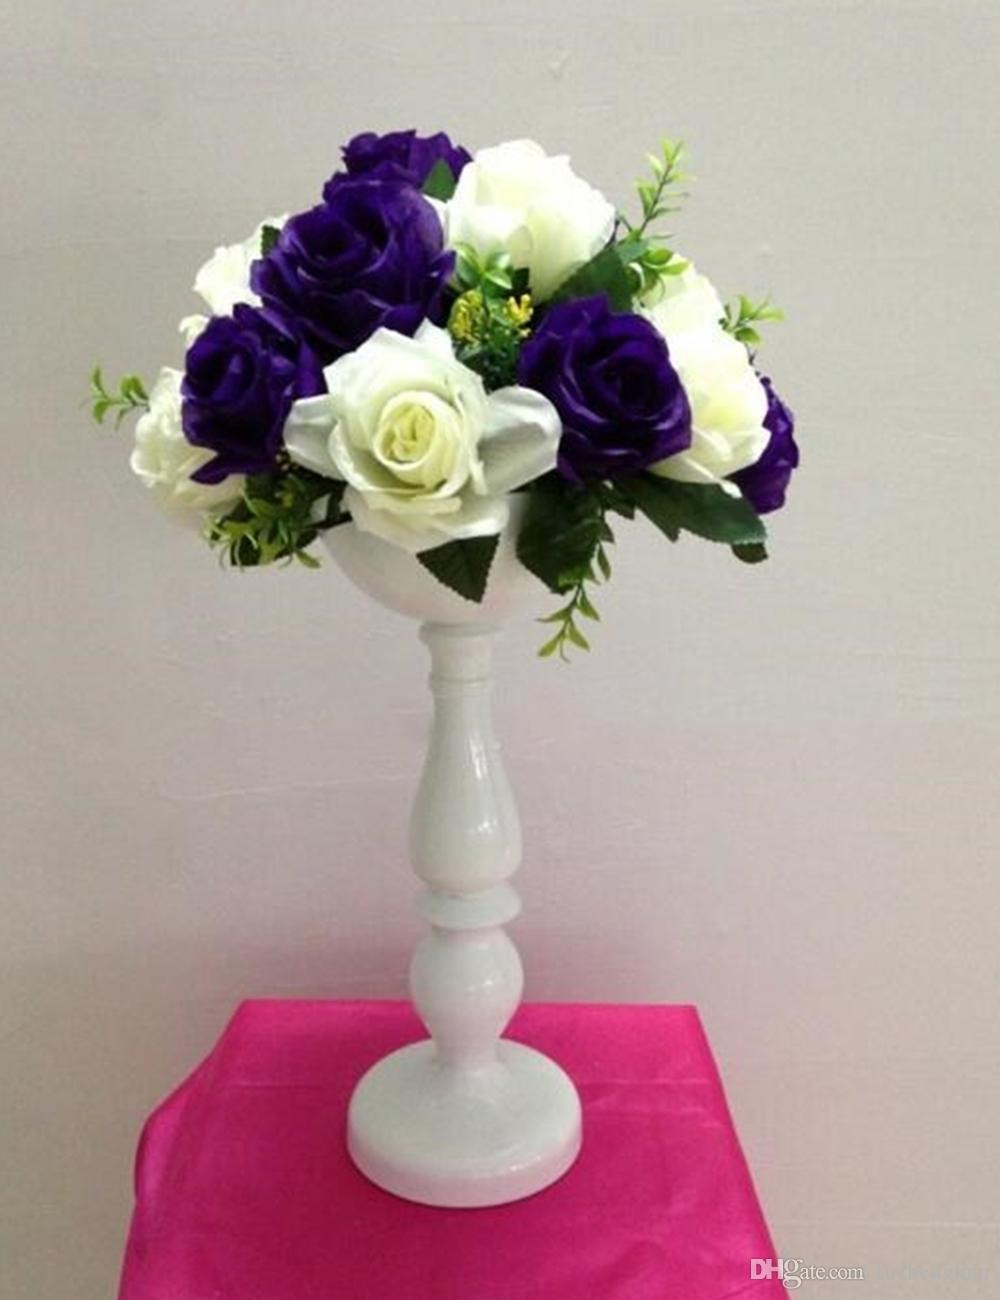 Hot Pink Flower Vases Of New Arrive 37 Cm Tall White Metal Flower Vase Wedding Table Intended for New Arrive 37 Cm Tall White Metal Flower Vase Wedding Table Centerpiece event Home Decor Hotel Road Lead Flower Vase Road Lead Online with 237 99 Piece